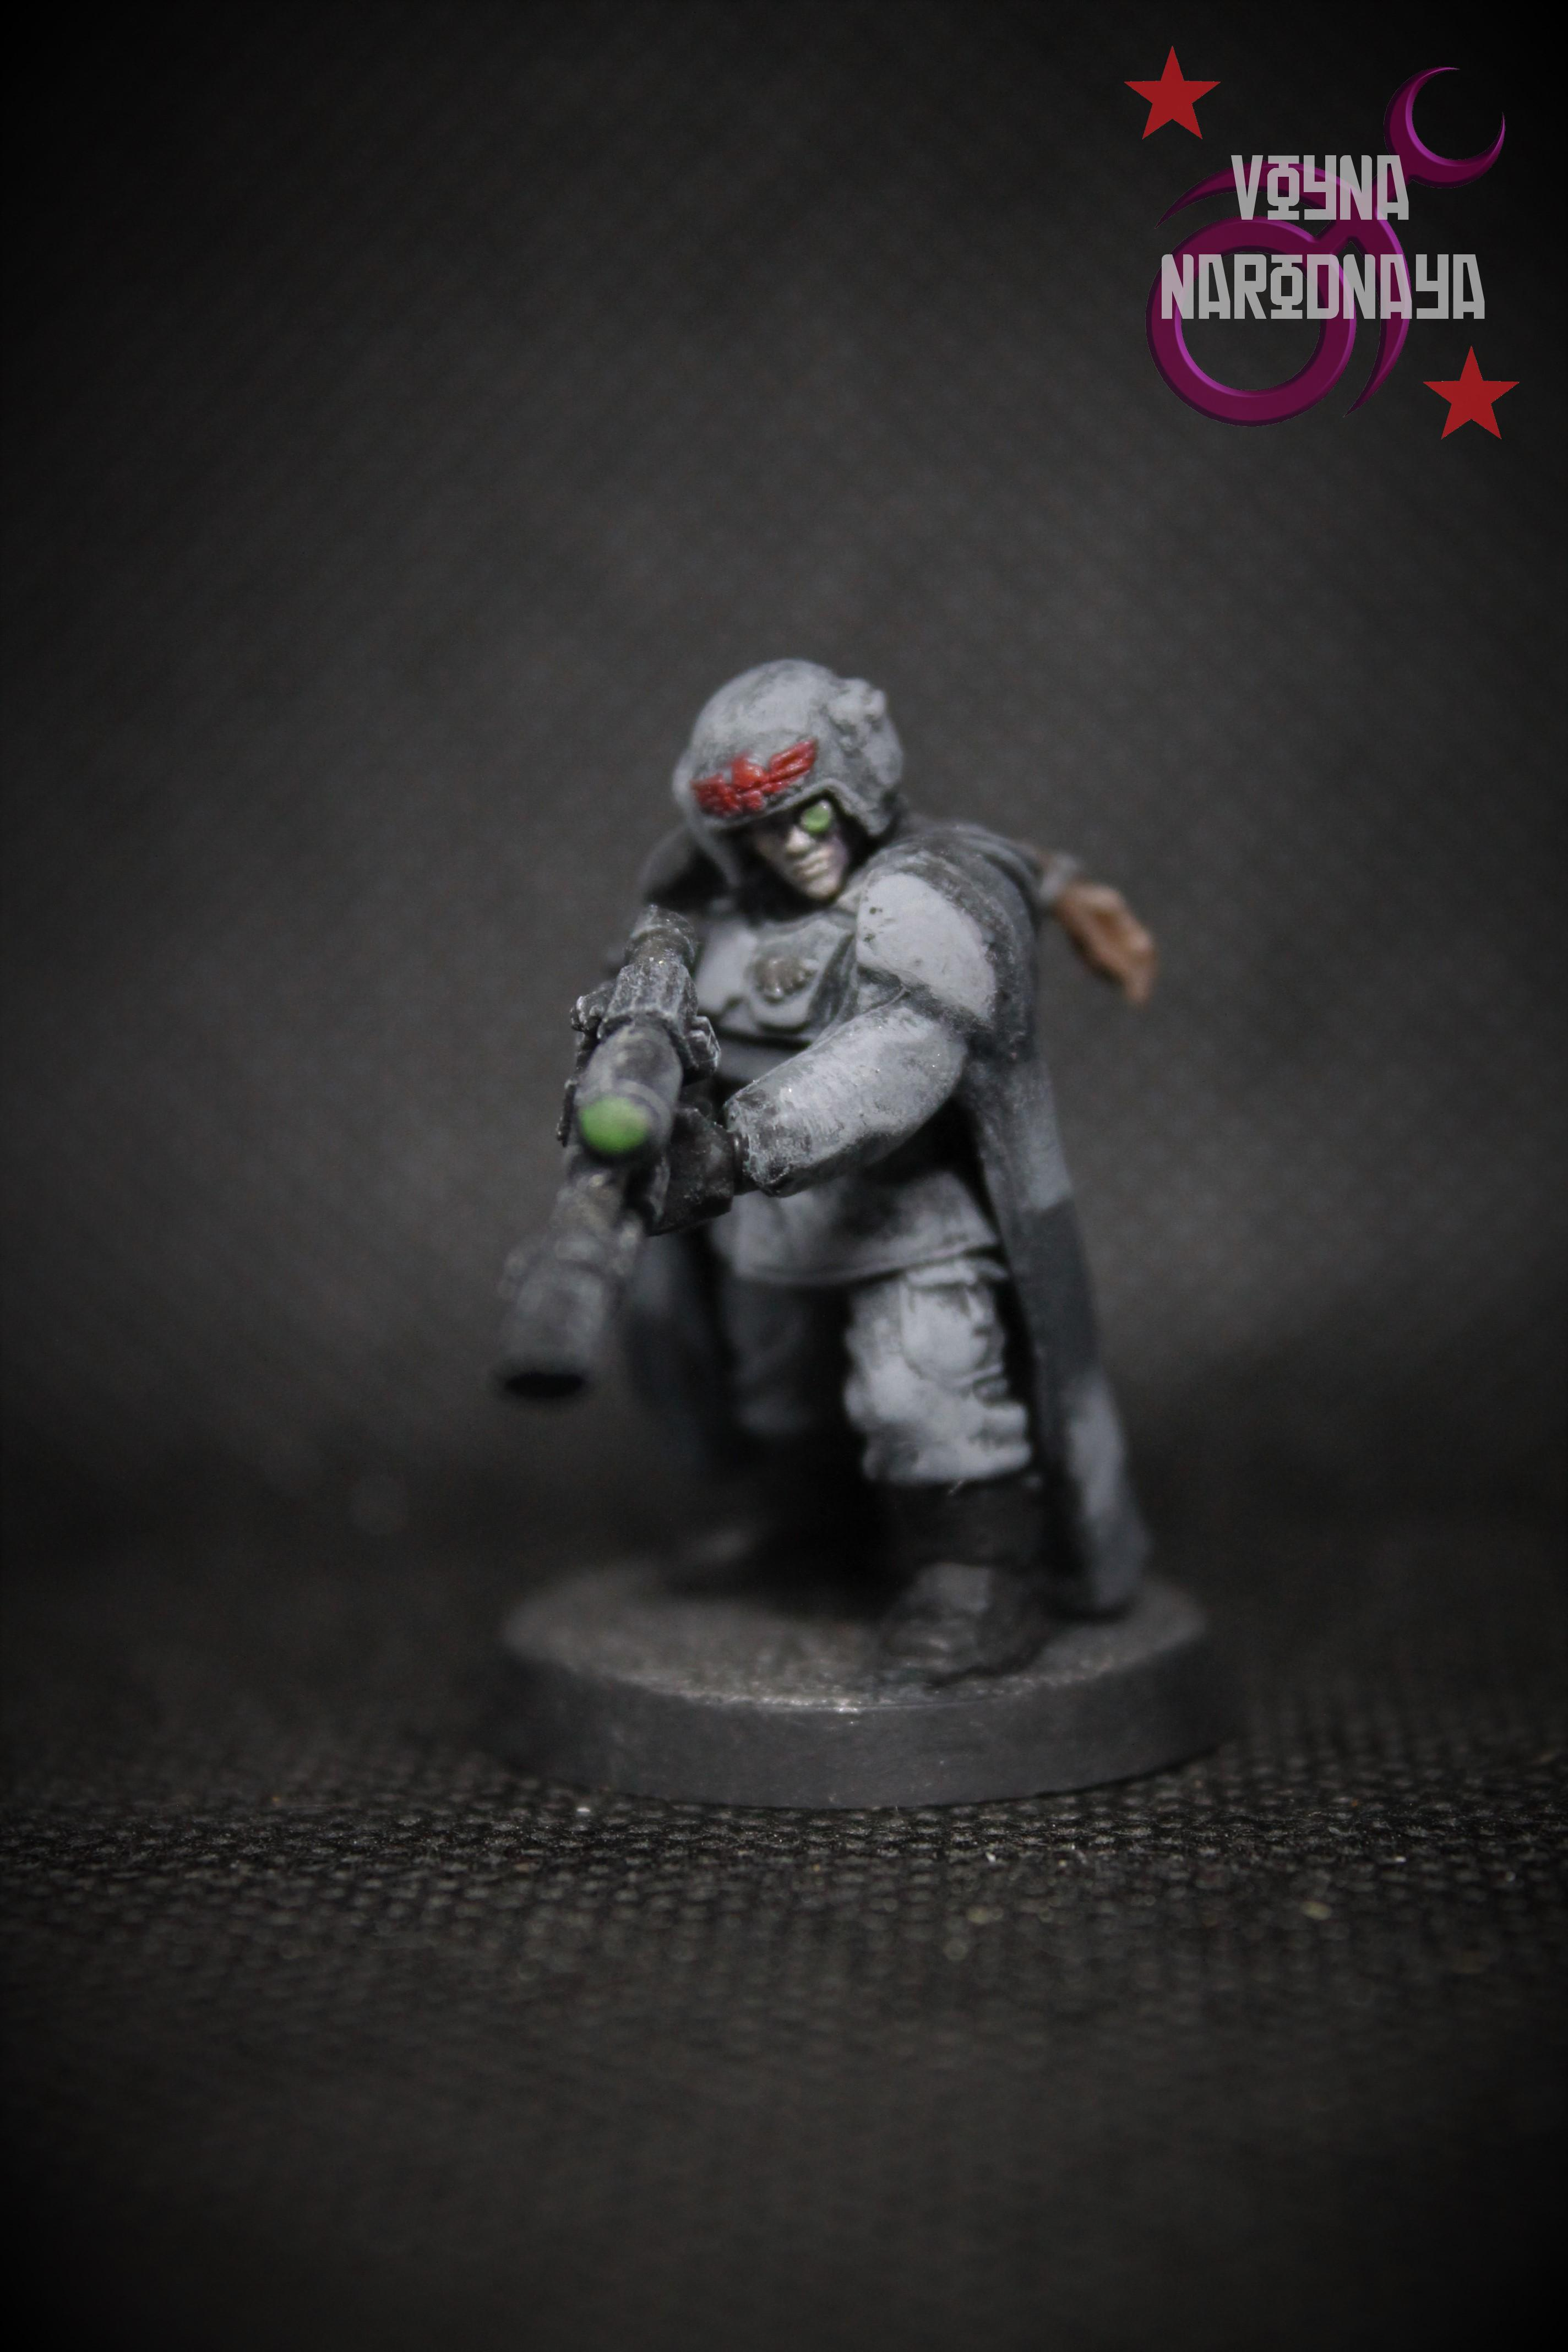 Assassin, Astra Militarum, Cadian Shock Troops, Cadians, Eastern Front, Female, Guard, Heretics, Imperial, Imperial Guard, Kronstadt, Kukushka, Militia, Planetary Defence Force, Red Army, Renegades, Renegades And Heretics, Snipers, Vindicare